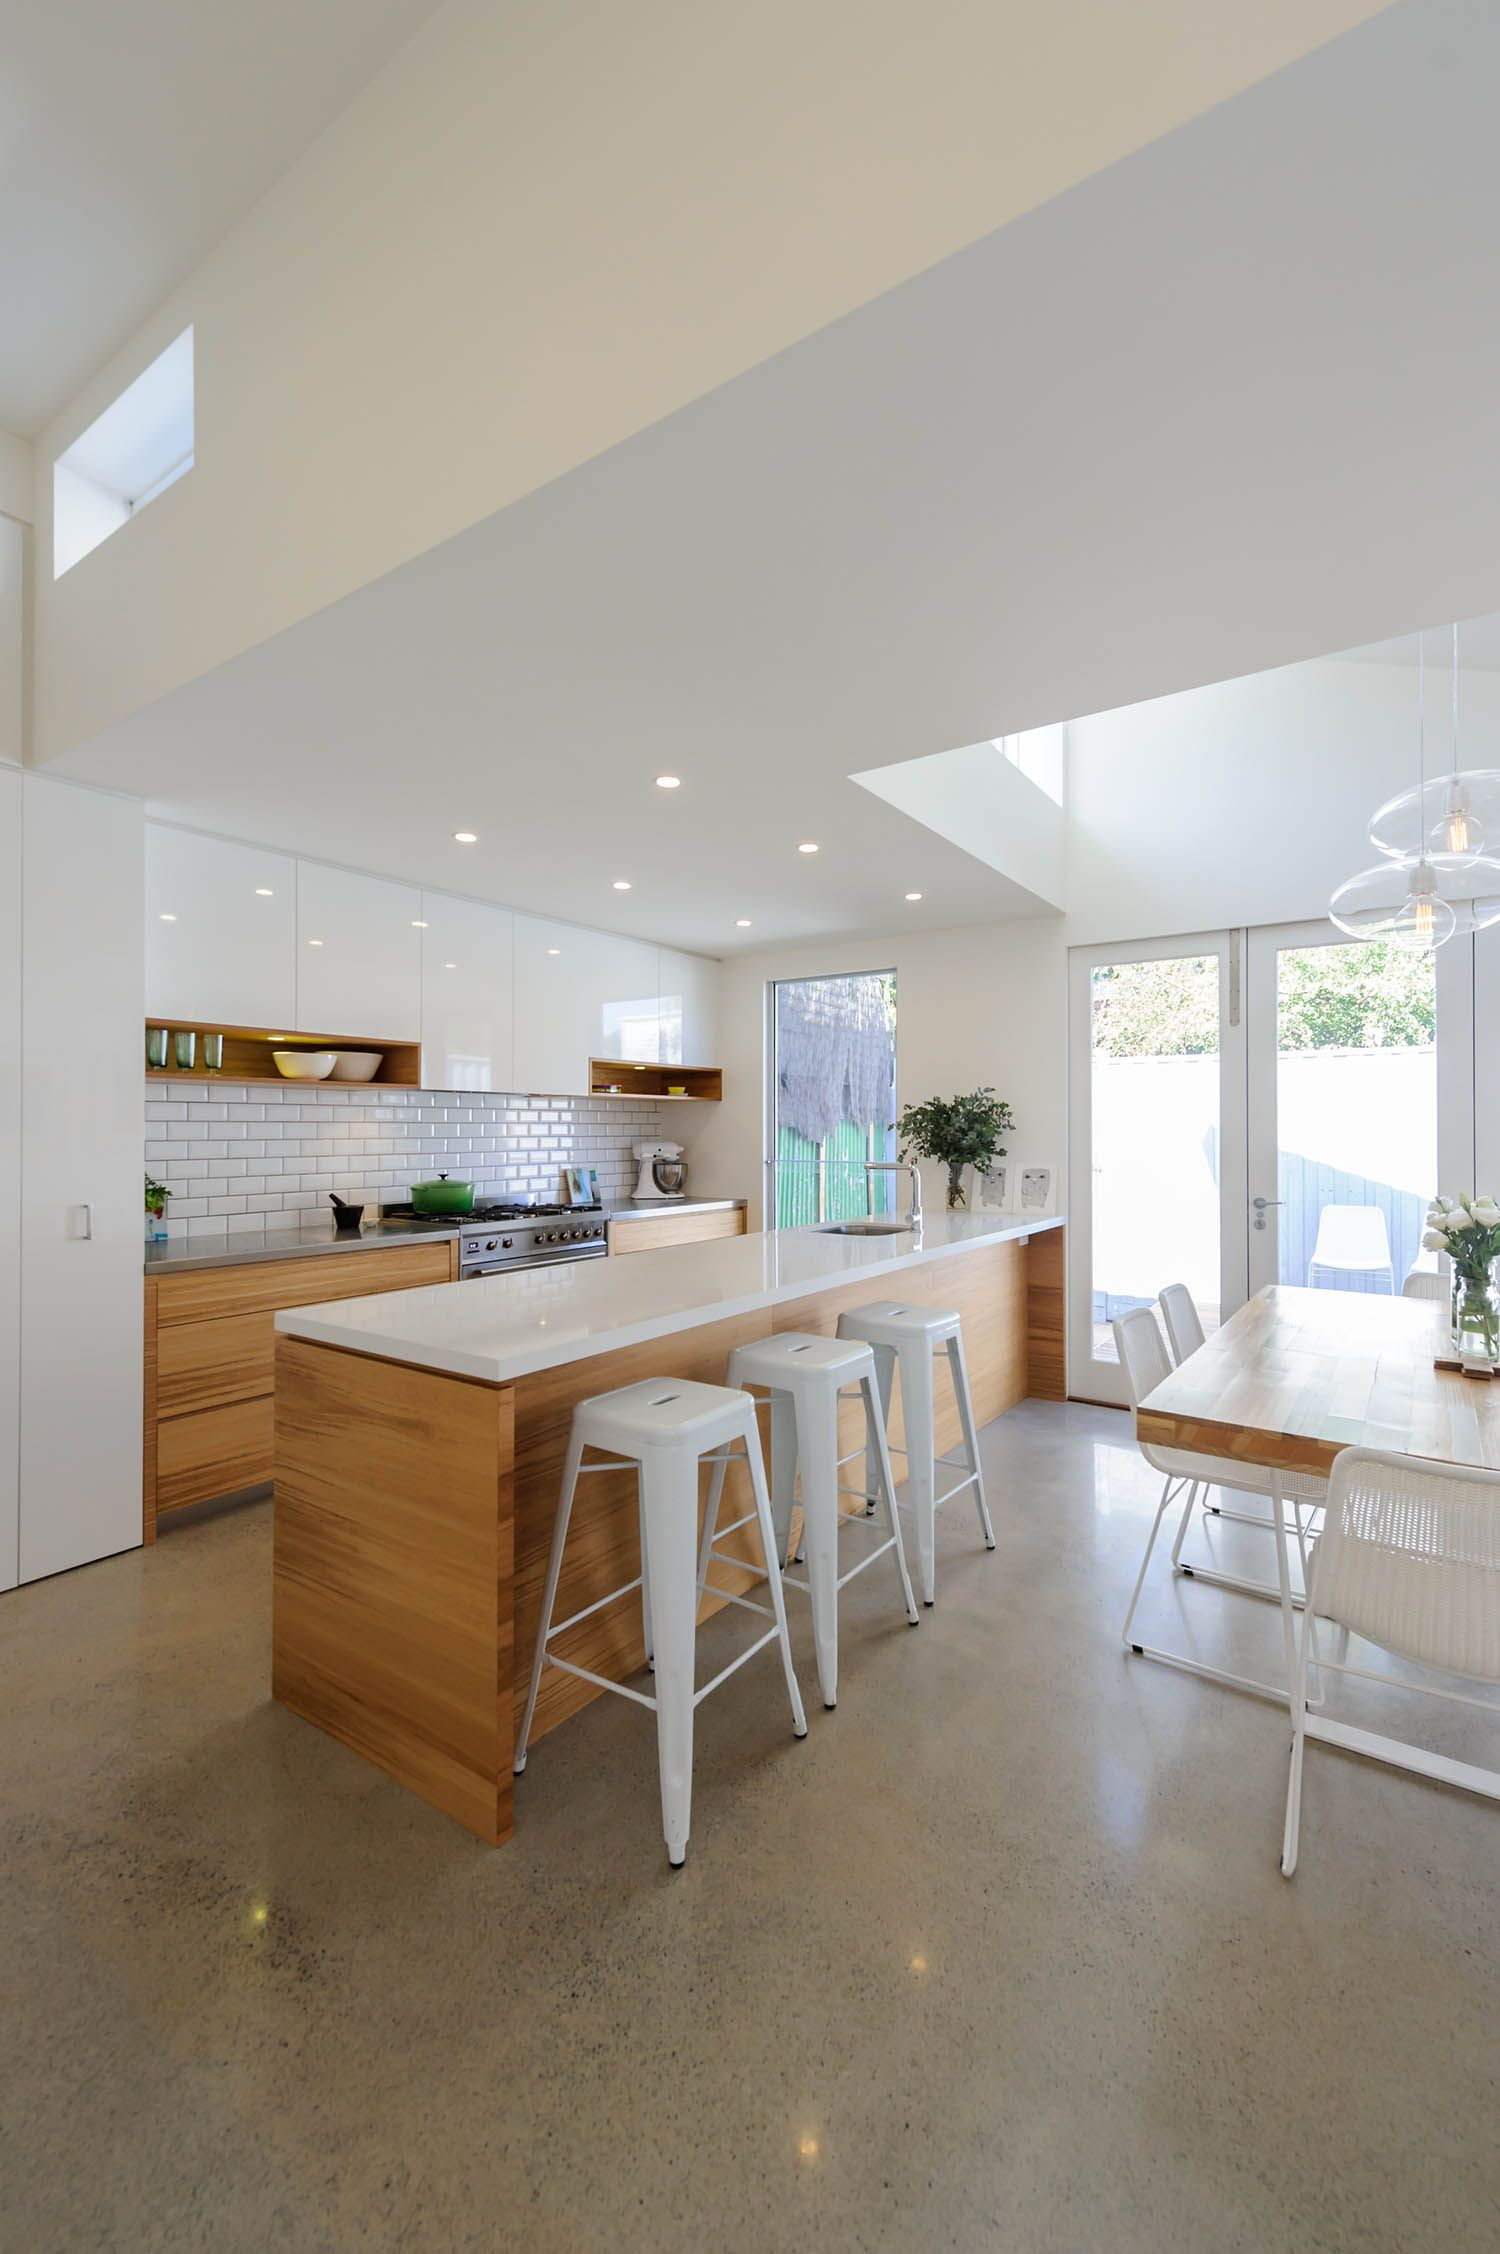 Kitchen Design St Kilda Kitchen Design White Kitchen Design Kitchen Interior